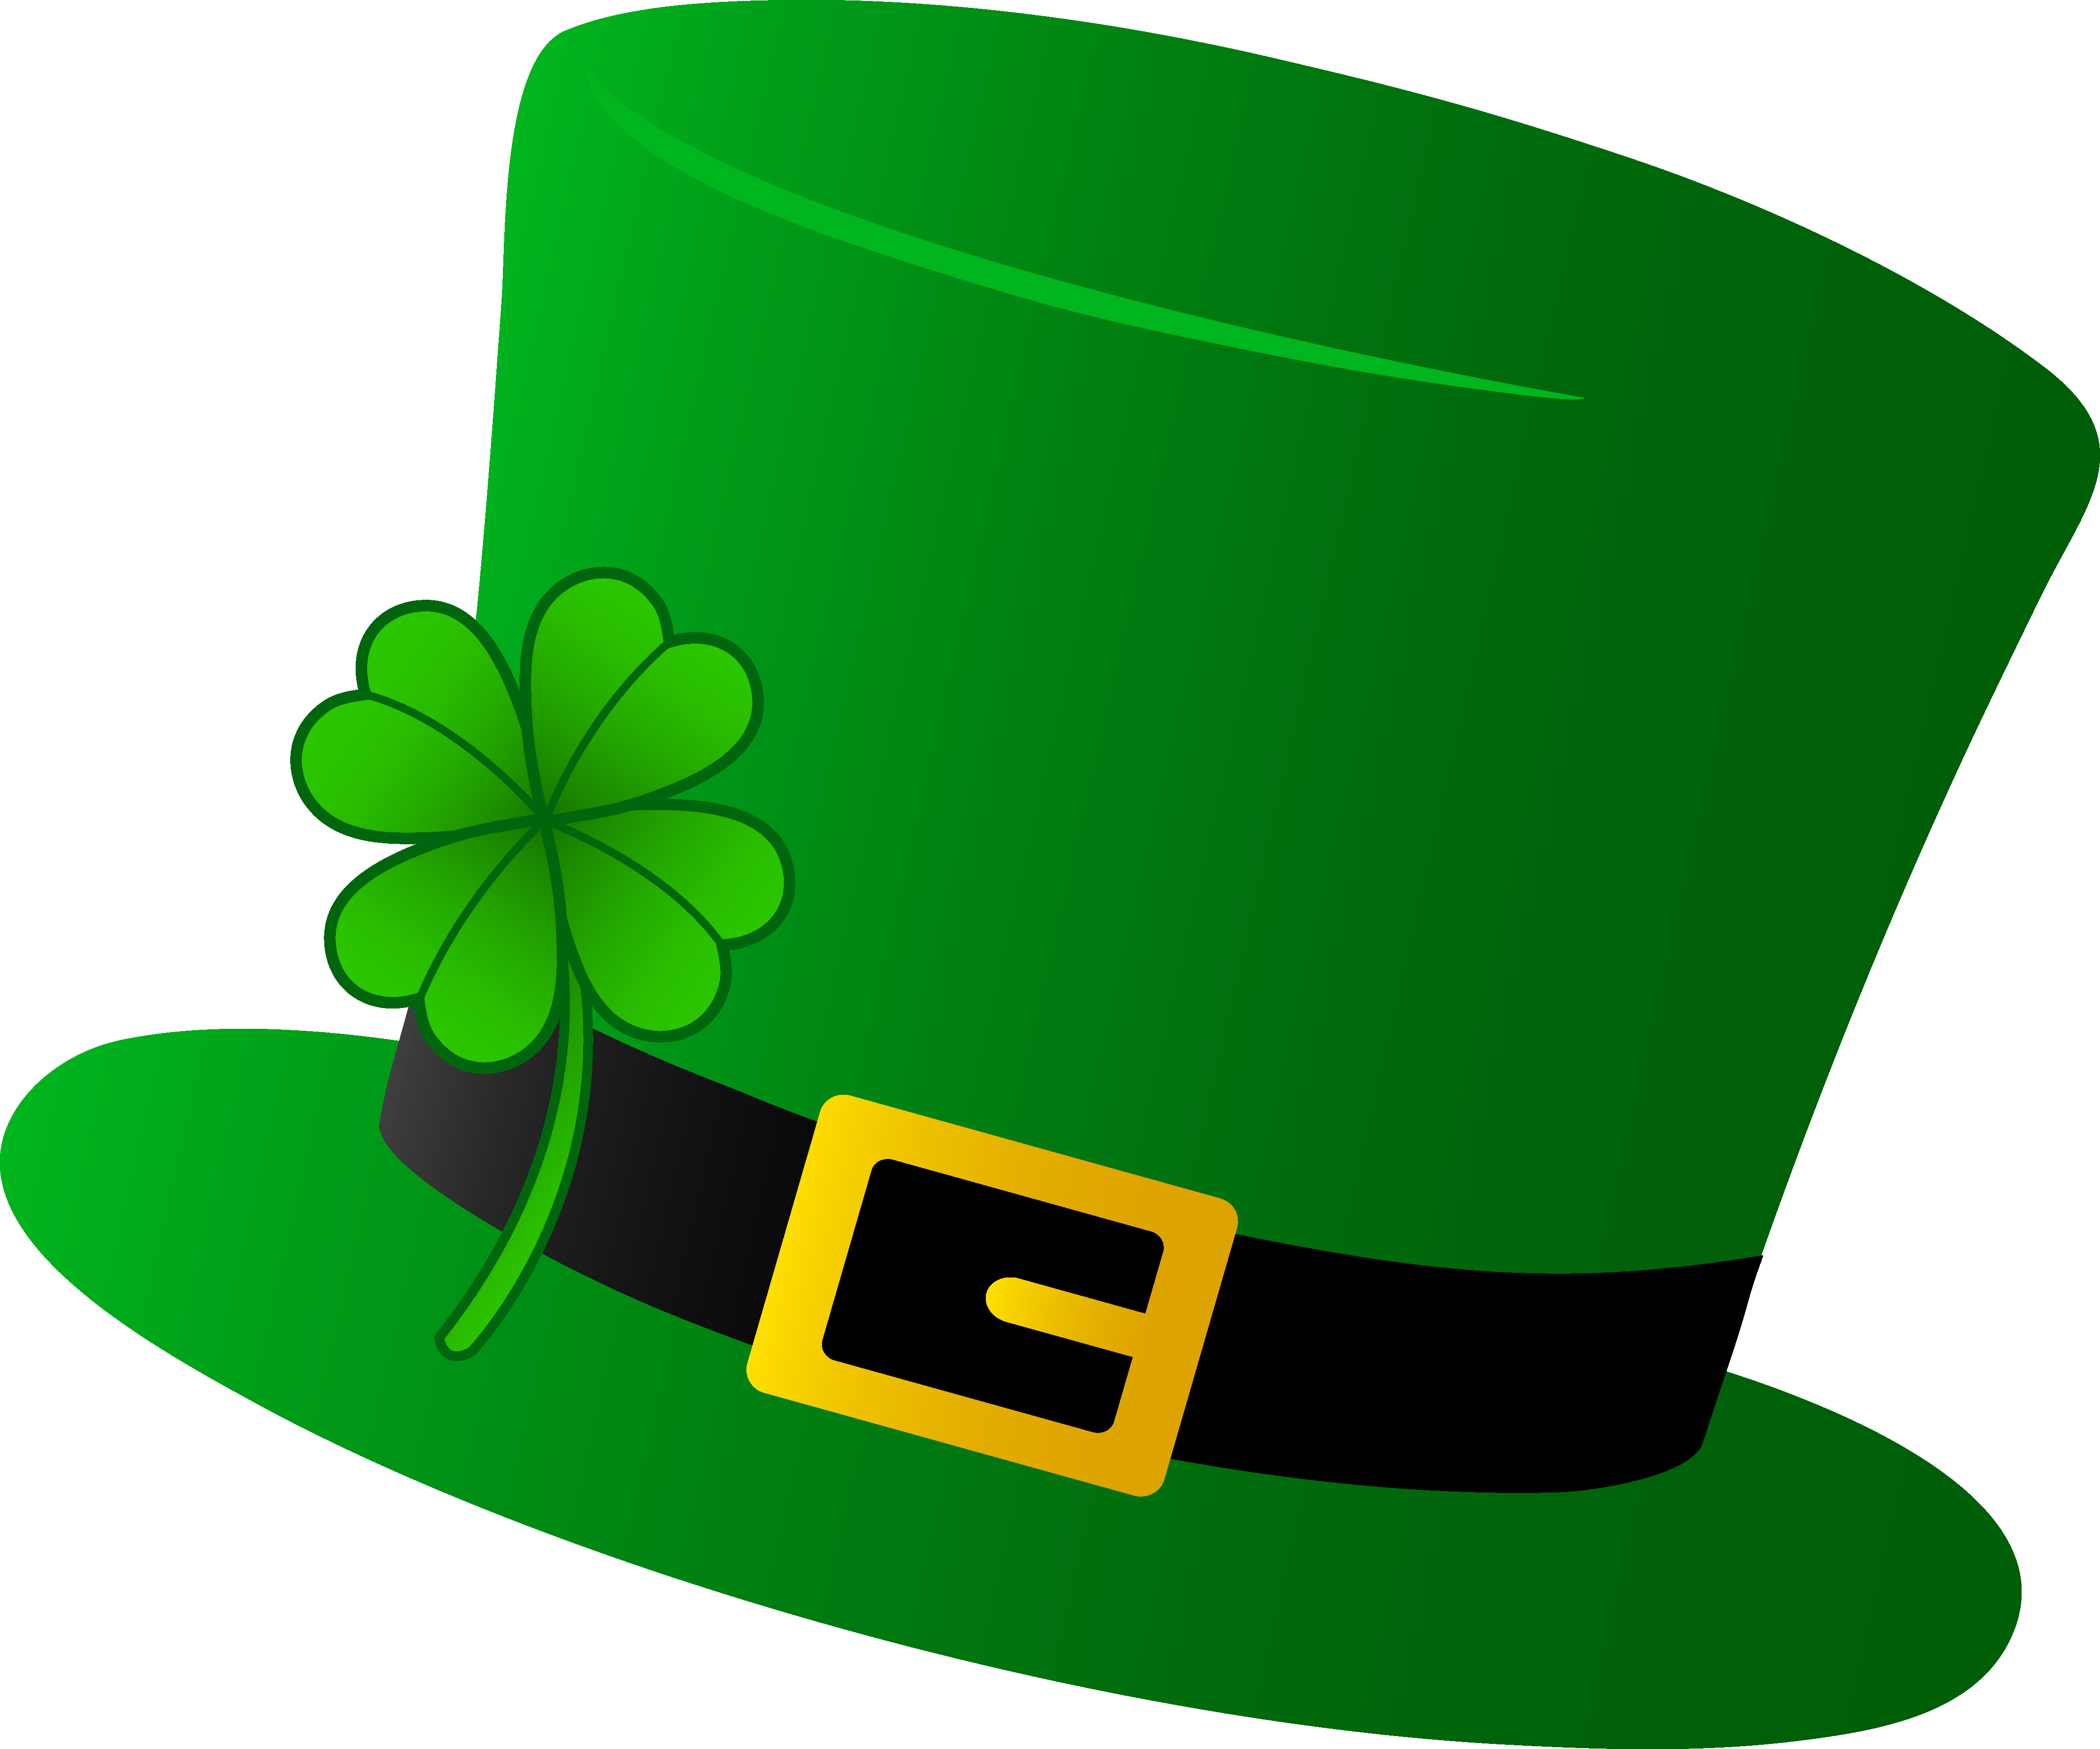 Green Saint Patricks Day Hat Images